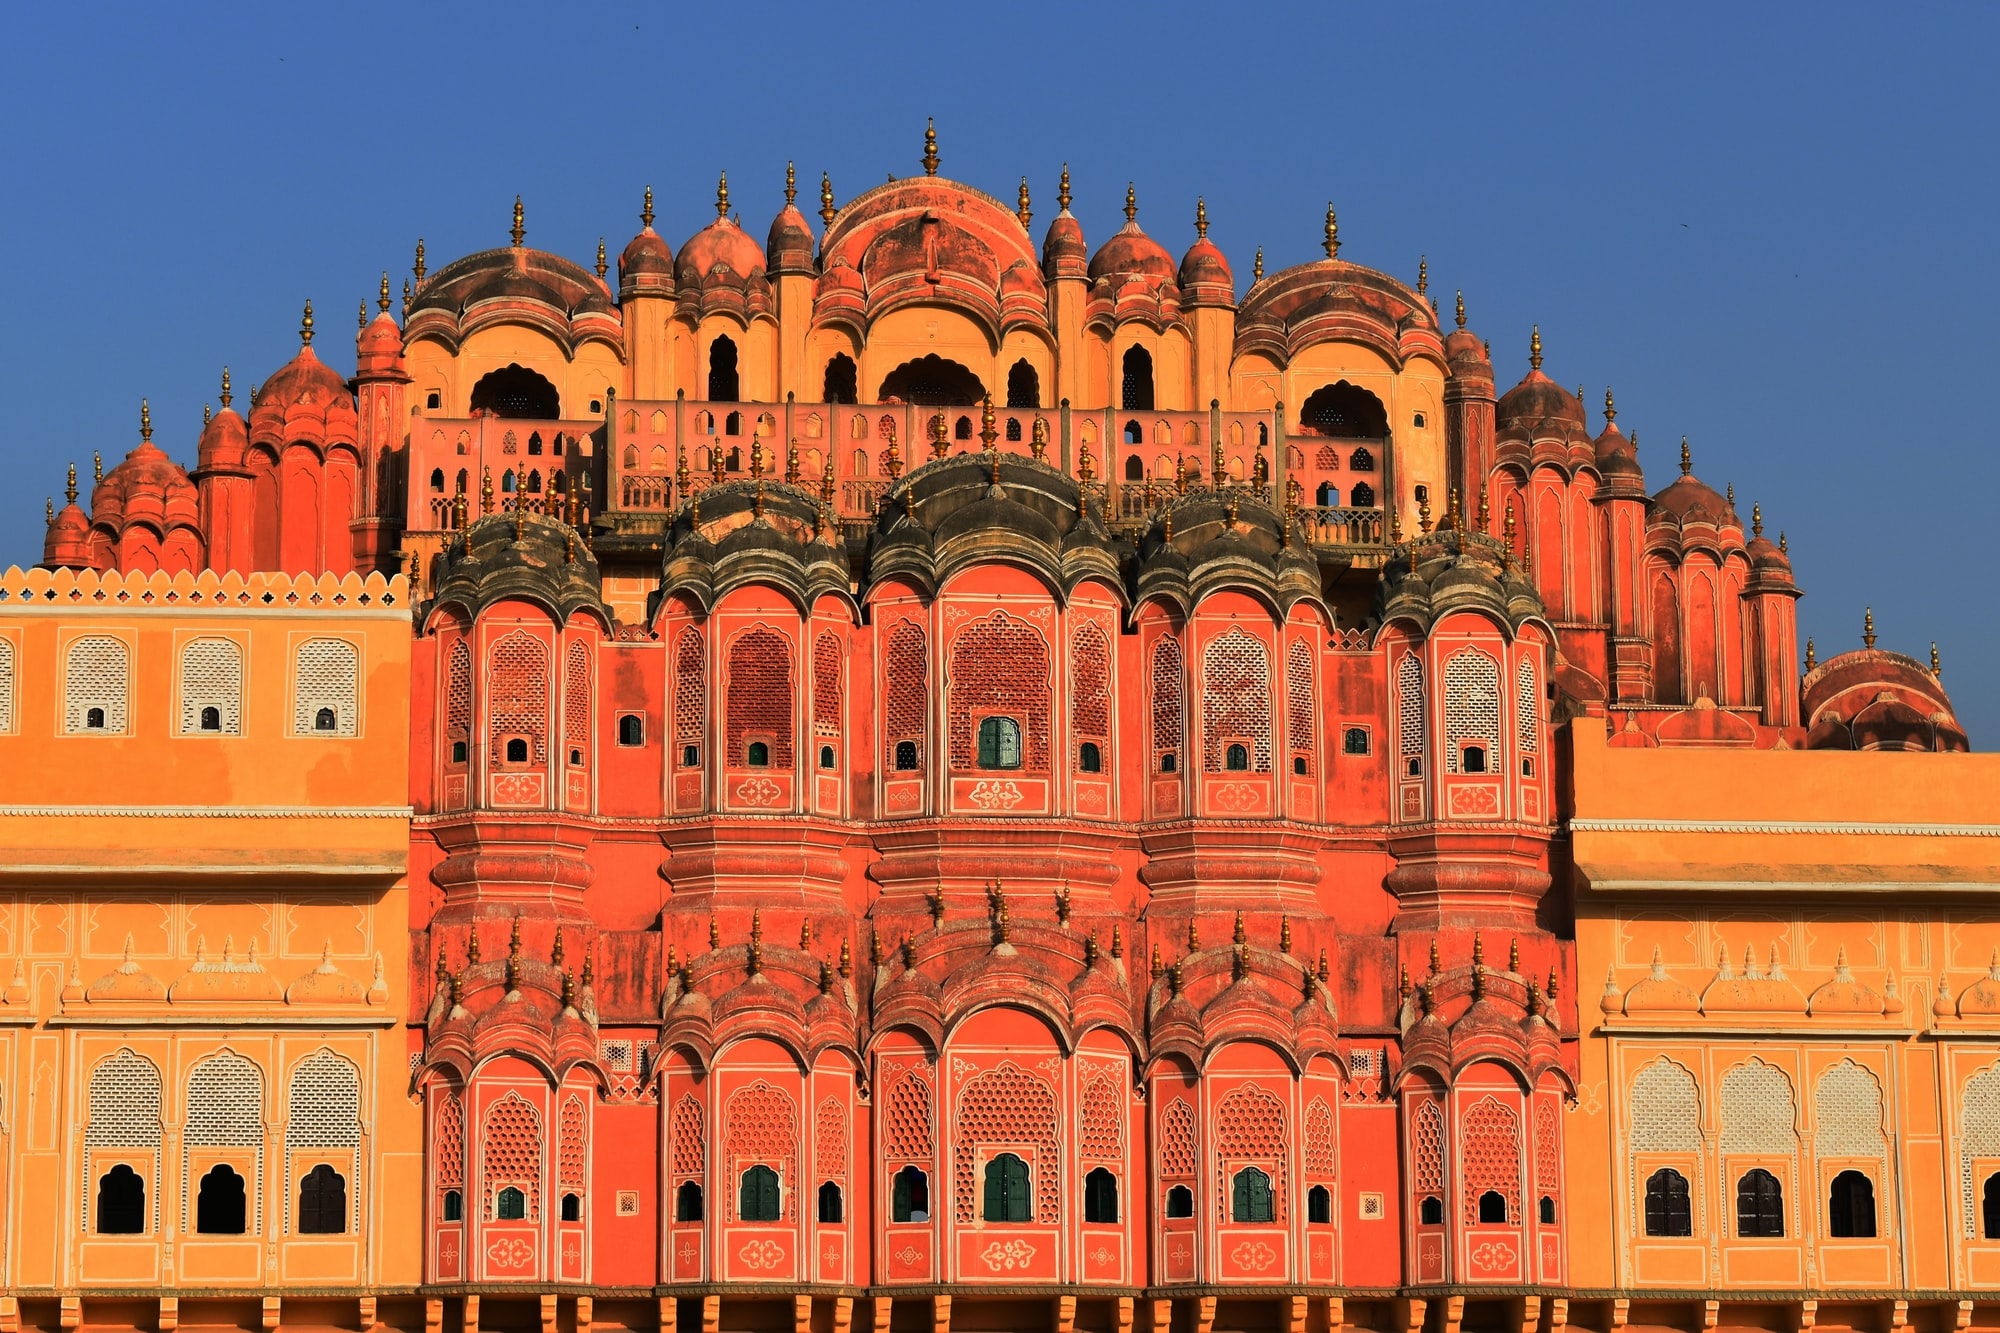 Hawa mahal is situated in Jaipur, Rajasthan that gives us a glimpse of Royal India.